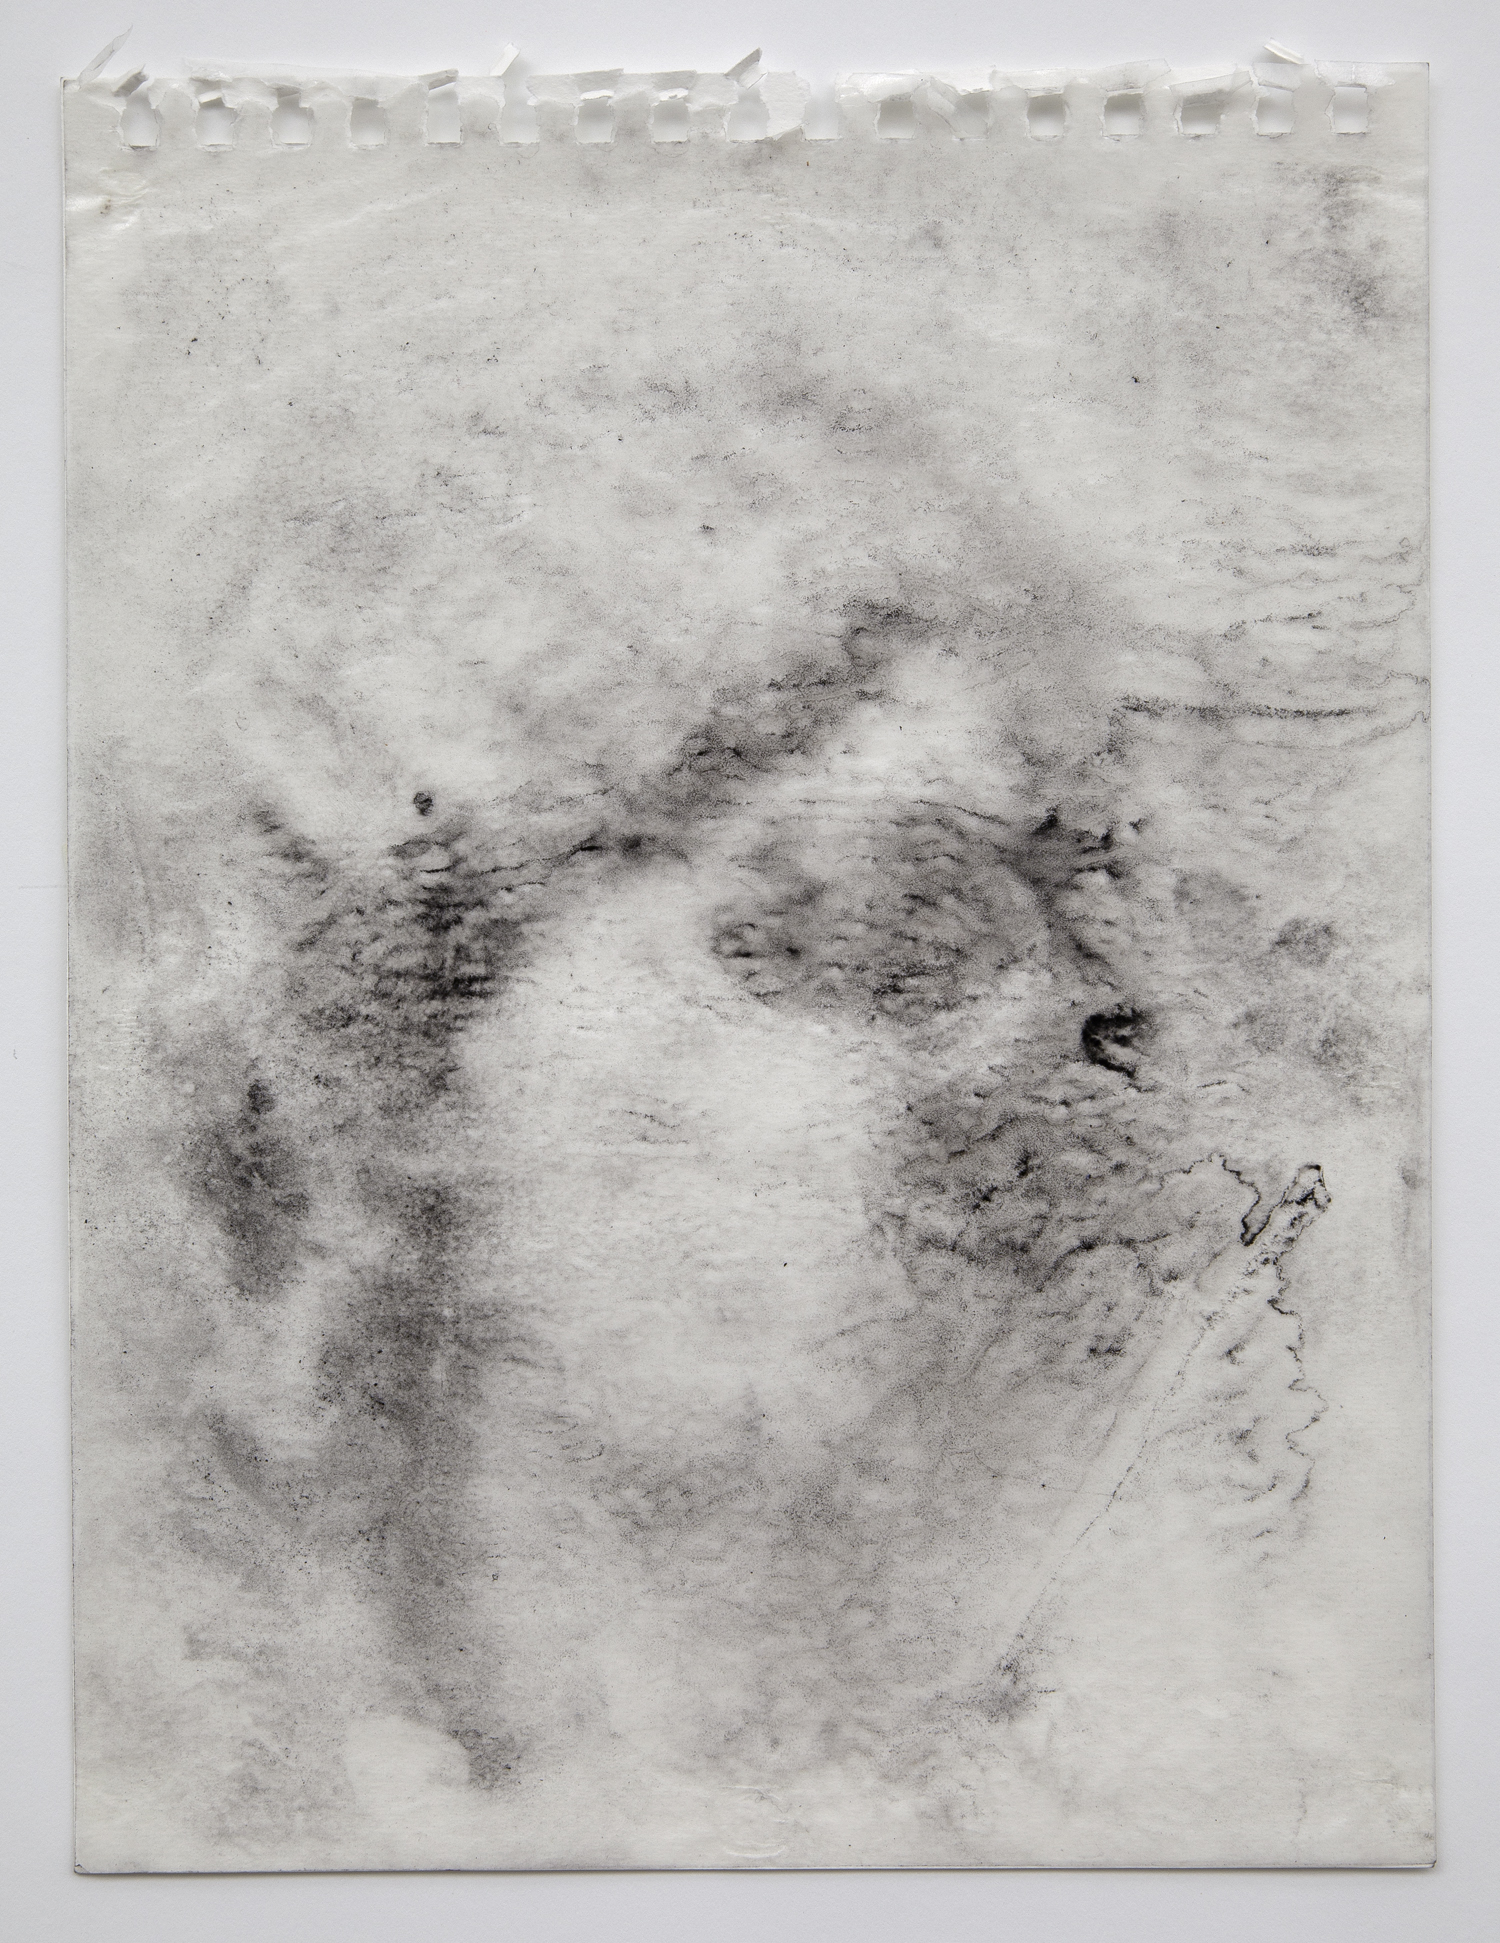 Interleaf Drawing (mother of the future Emperor of Rome), 2013